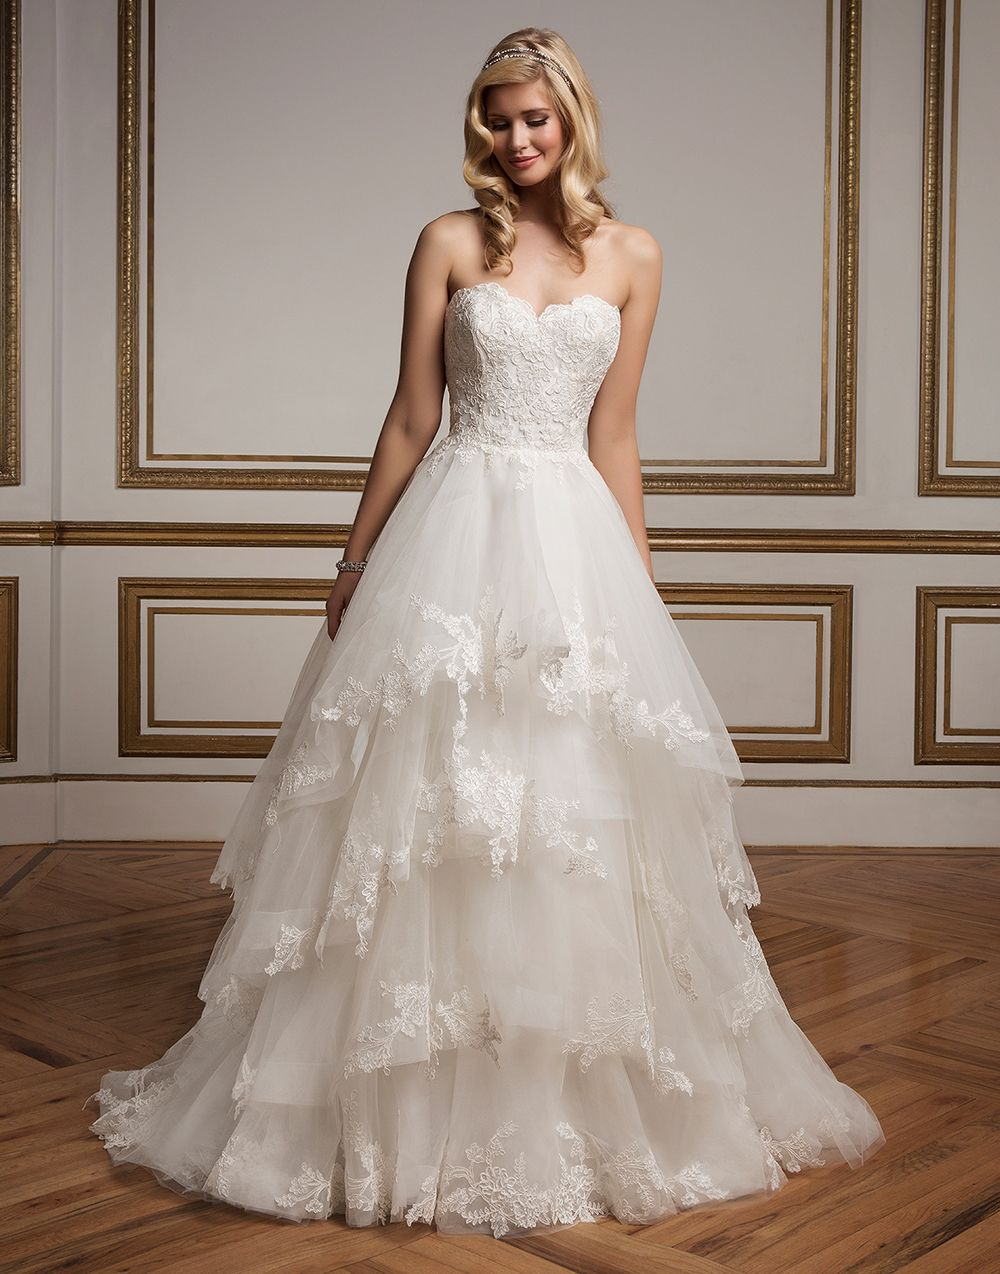 Justin alexander wedding dresses style 8823 a for Justin alexander lace wedding dress